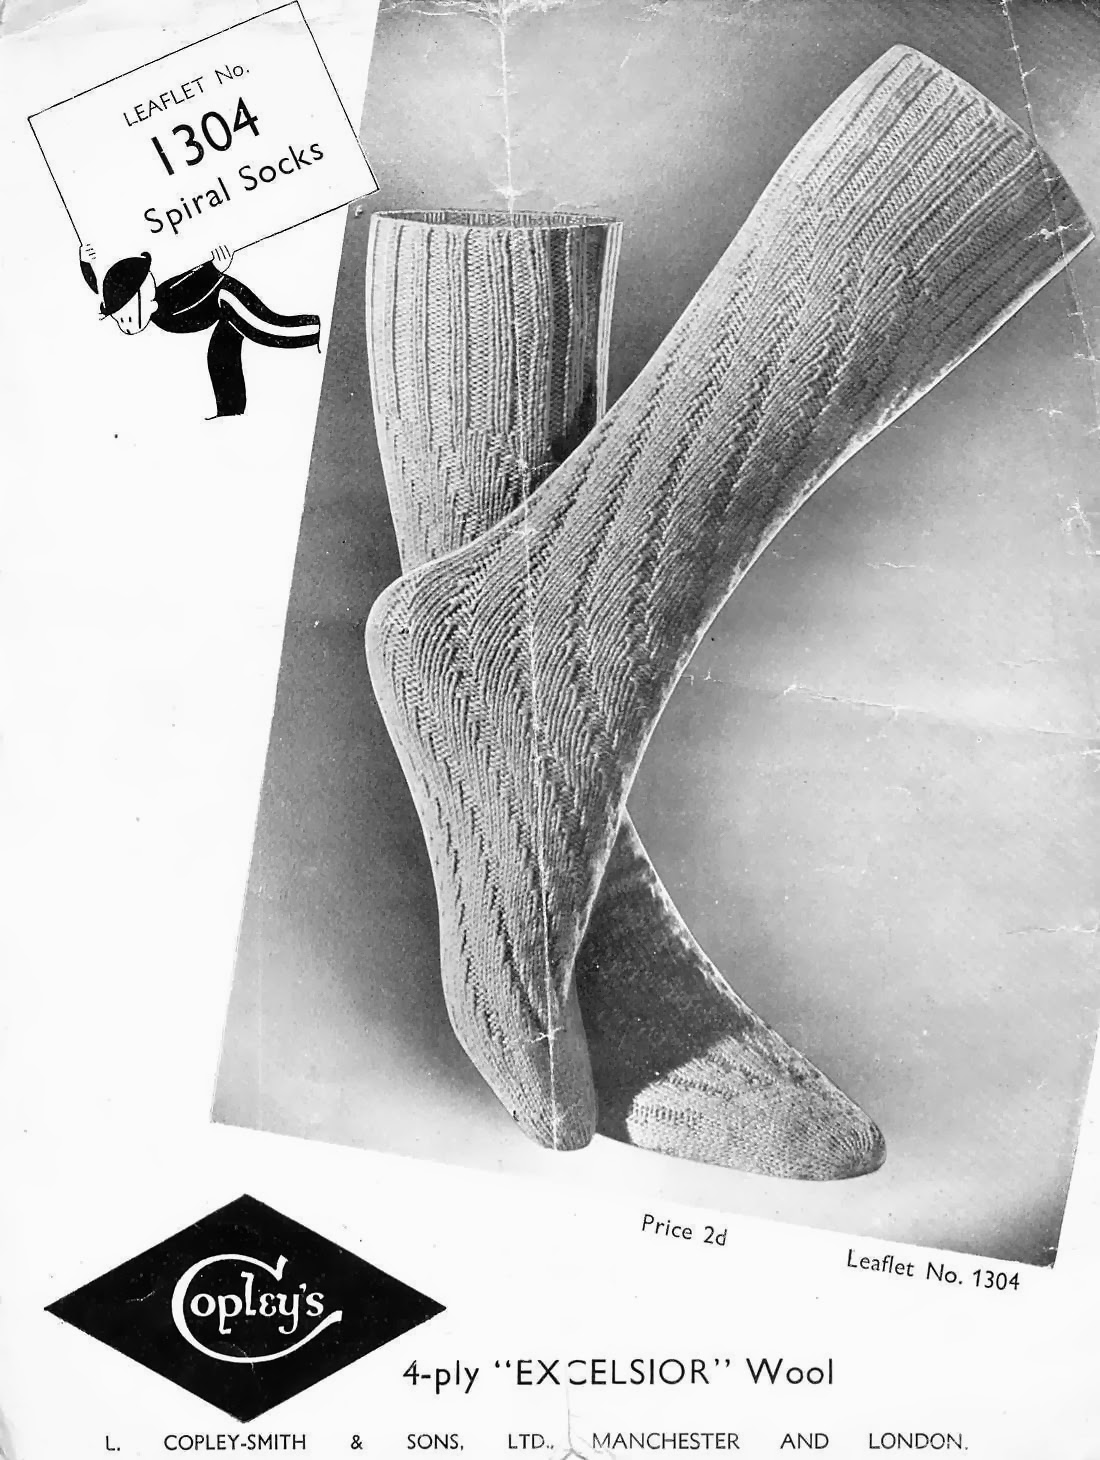 Knitting Now and Then: Spiral Socks